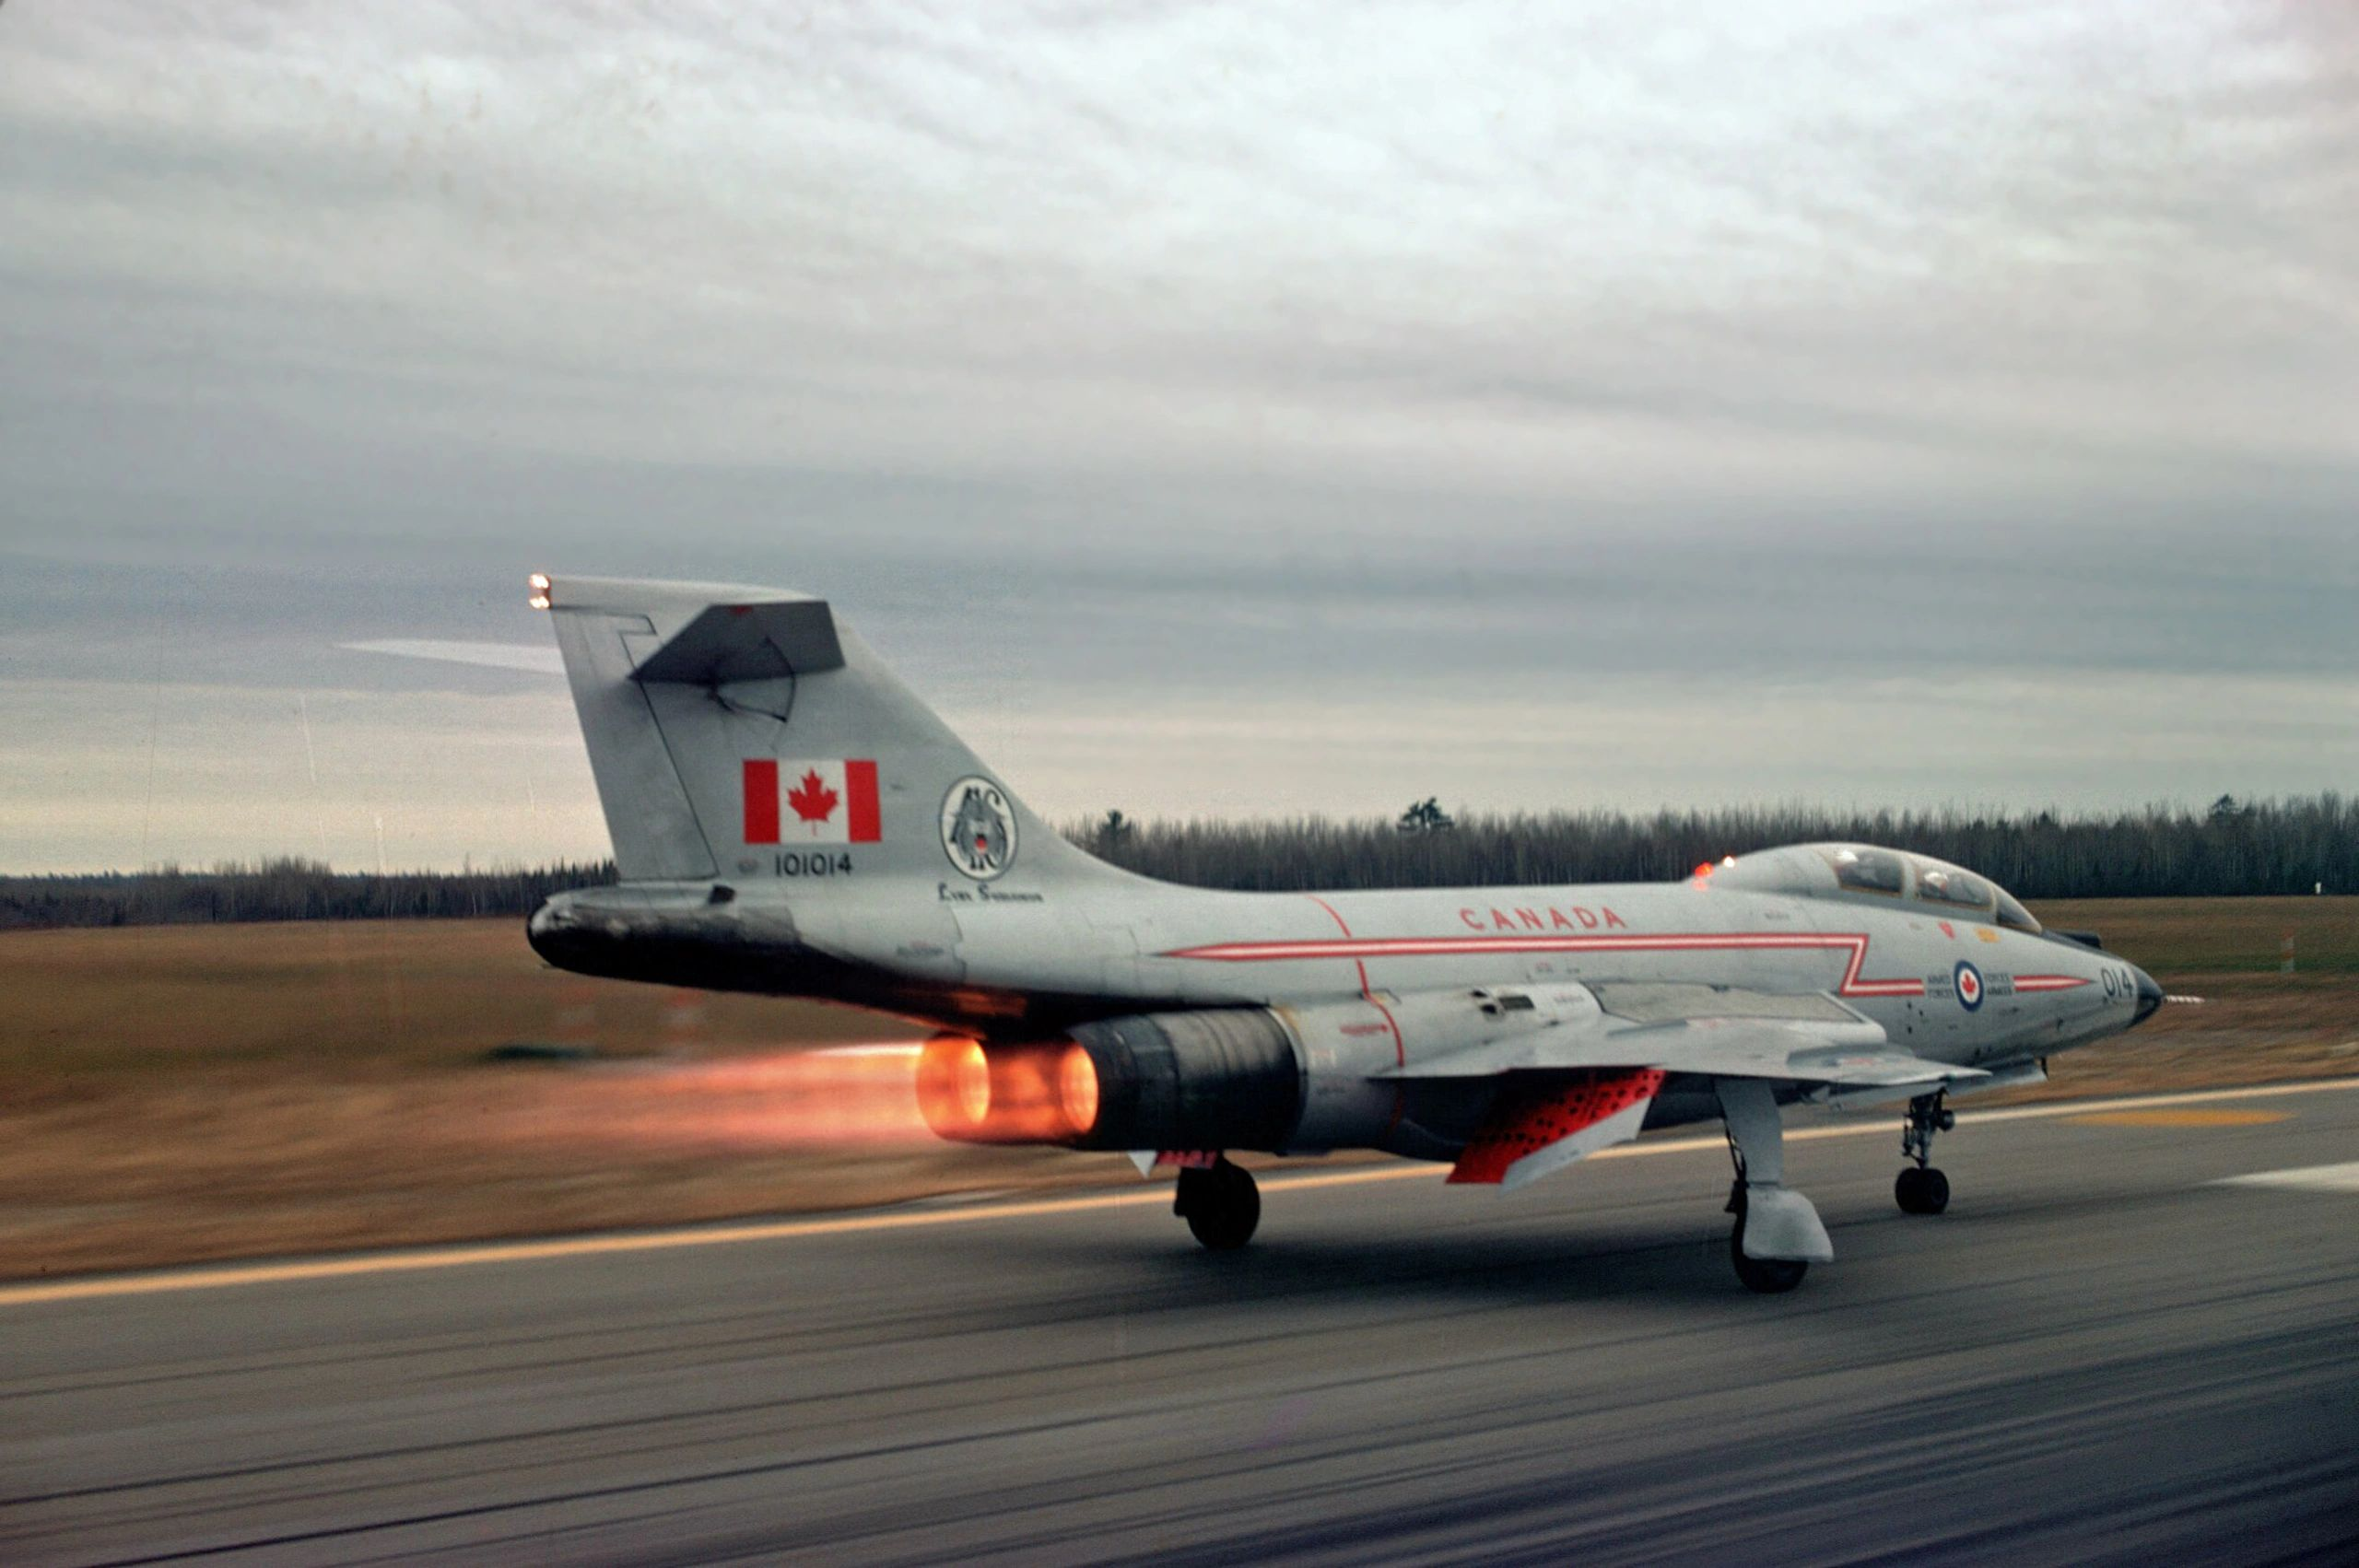 CF-101 Voodoo 101014 on takeoff